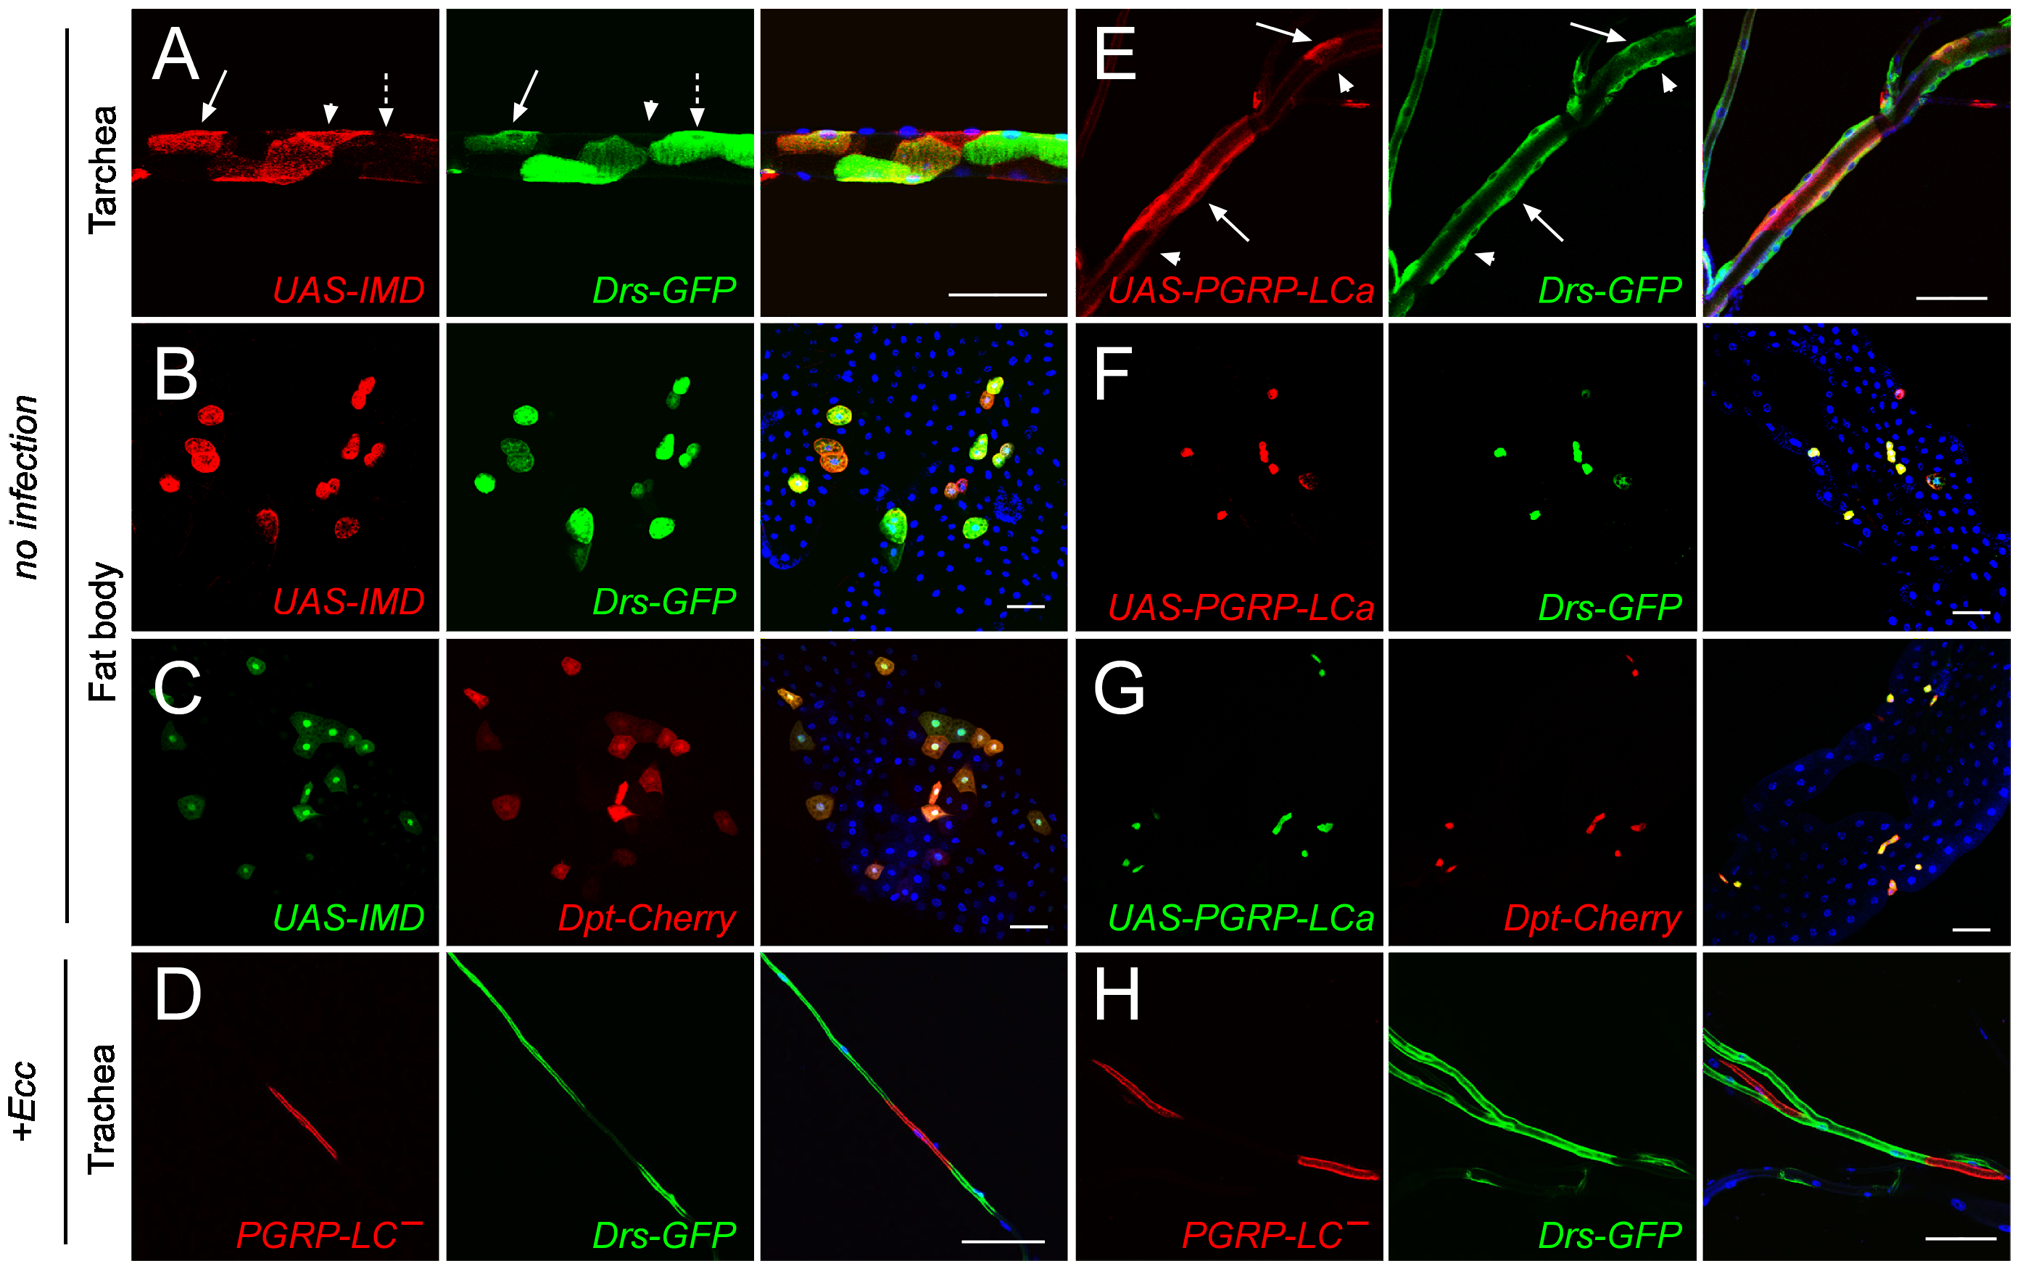 IMD pathway activation is not strictly cell-autonomous in trachea.